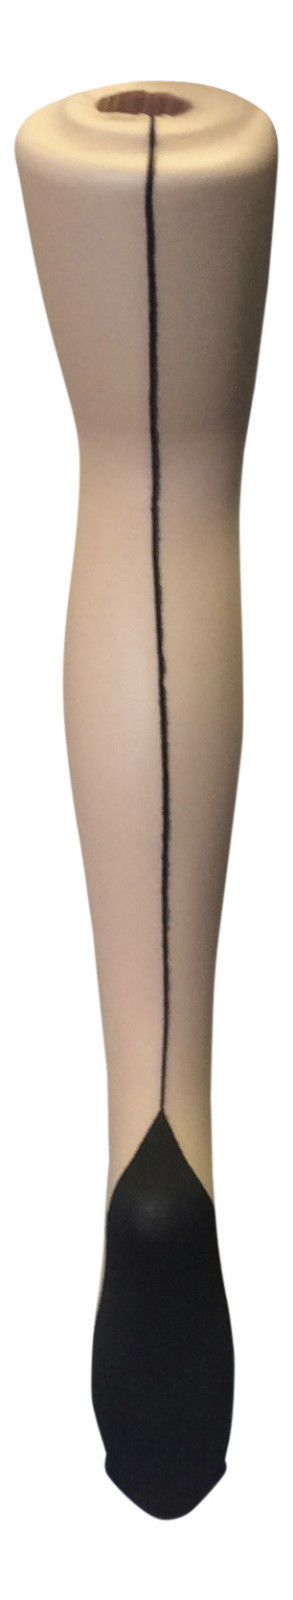 Sock Snob - Ladies Retro Back Seam Designer sexy 40's Tights Sizes 8-24 uk,